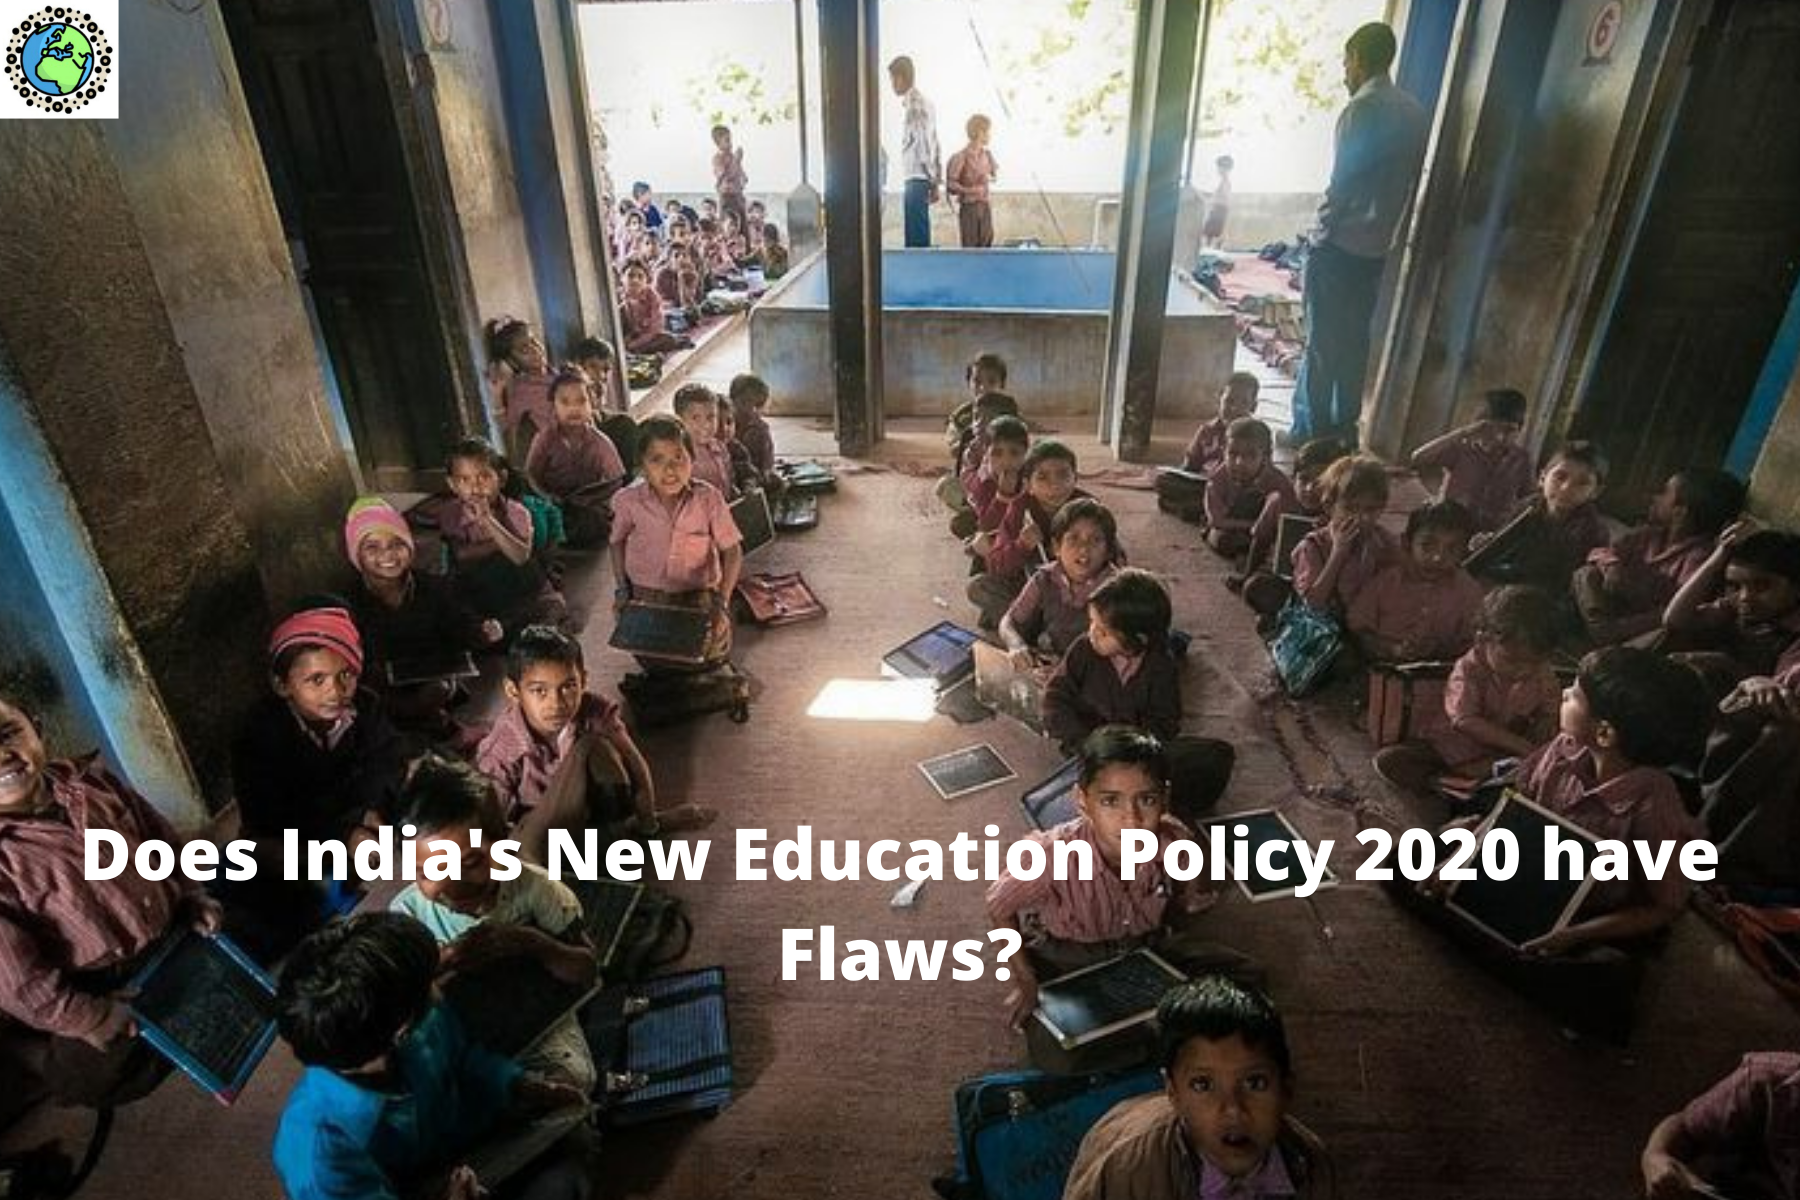 new education policy 2020 flaws